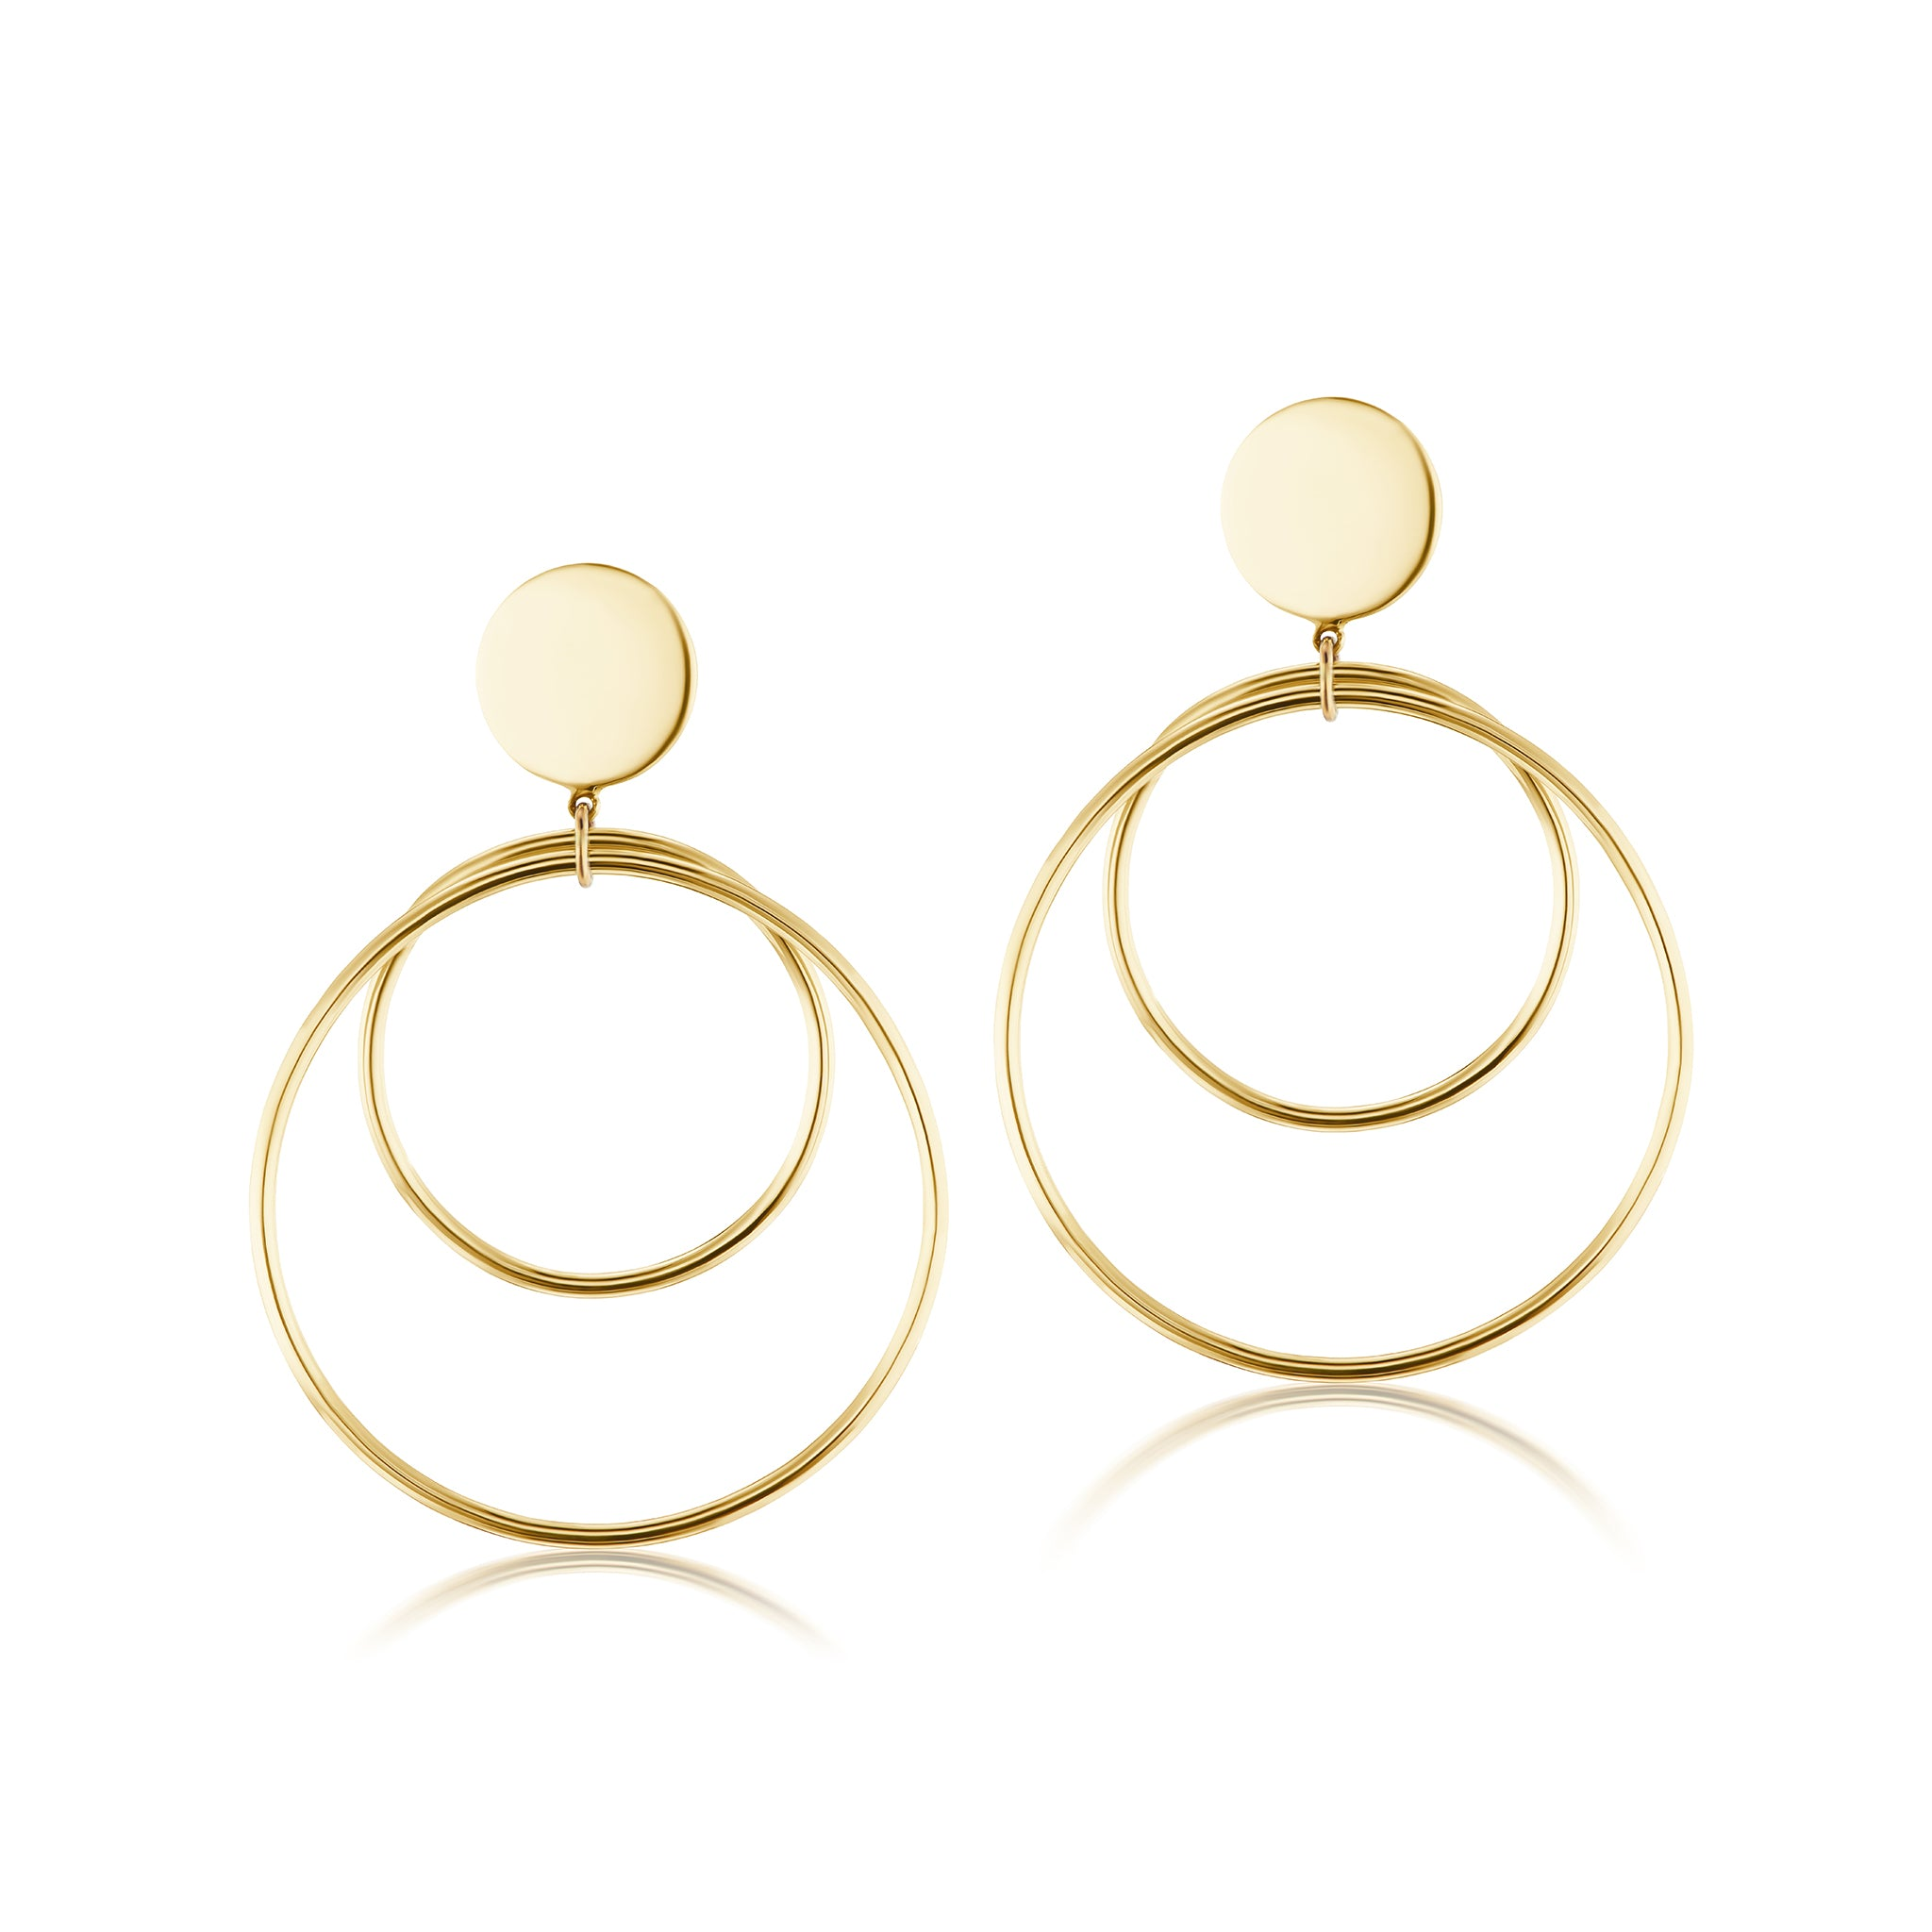 The Gold Sunrise Earring